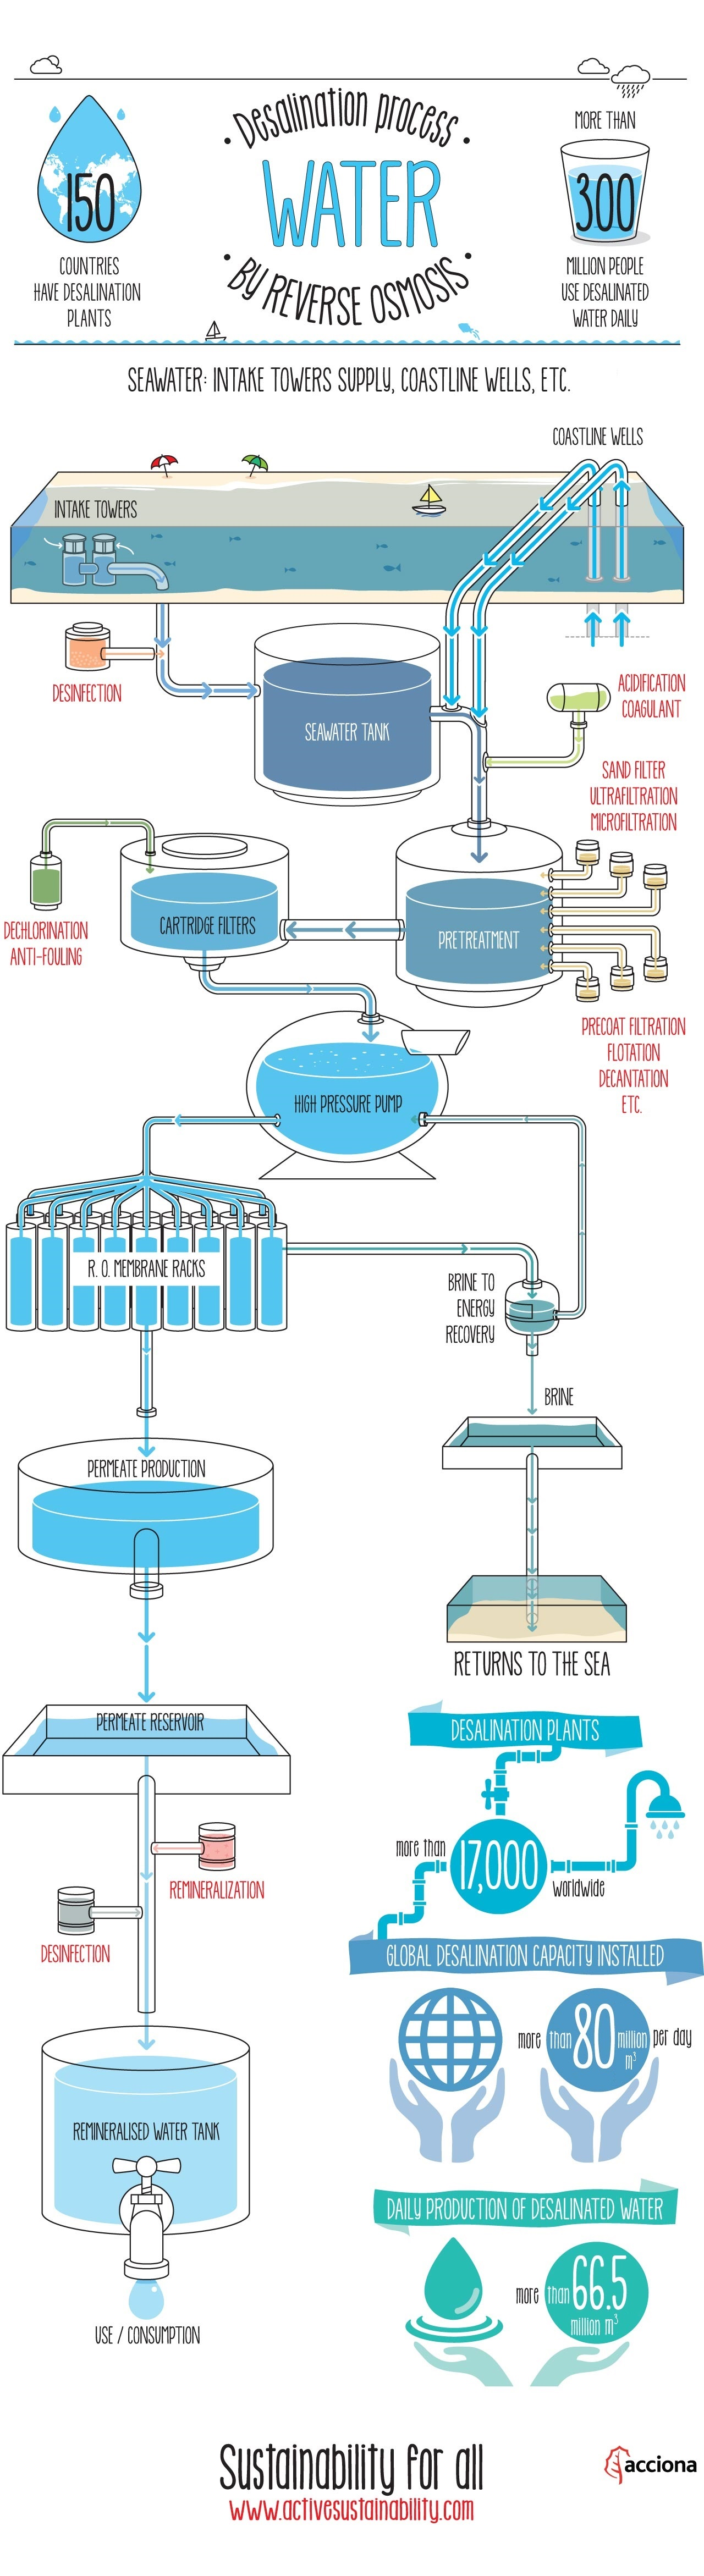 Desalination of water: methods and installations